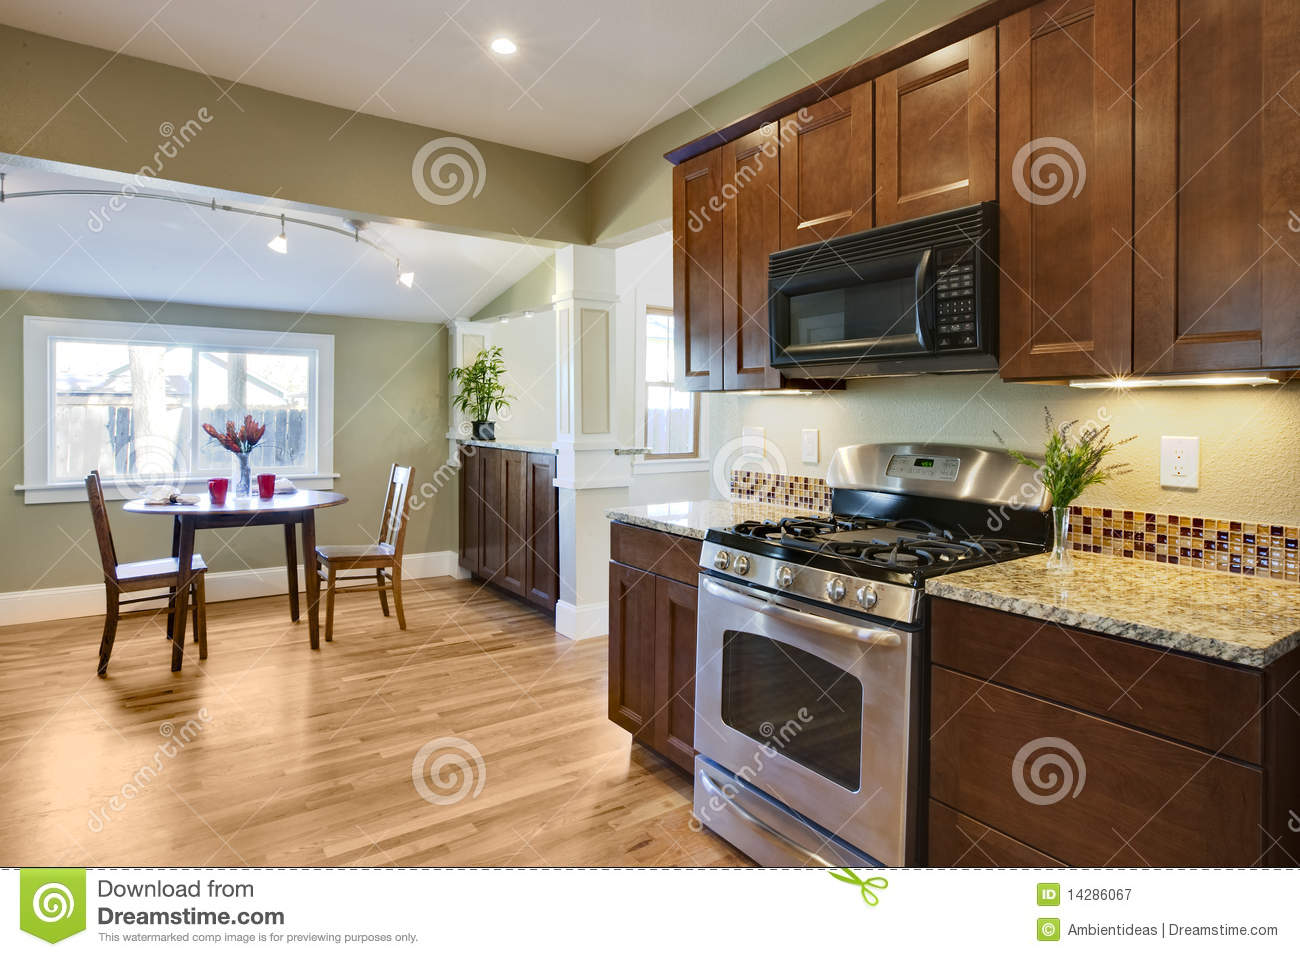 royalty free stock photography remodel kitchen wood flooring image wood floors in kitchen Remodel kitchen with wood flooring